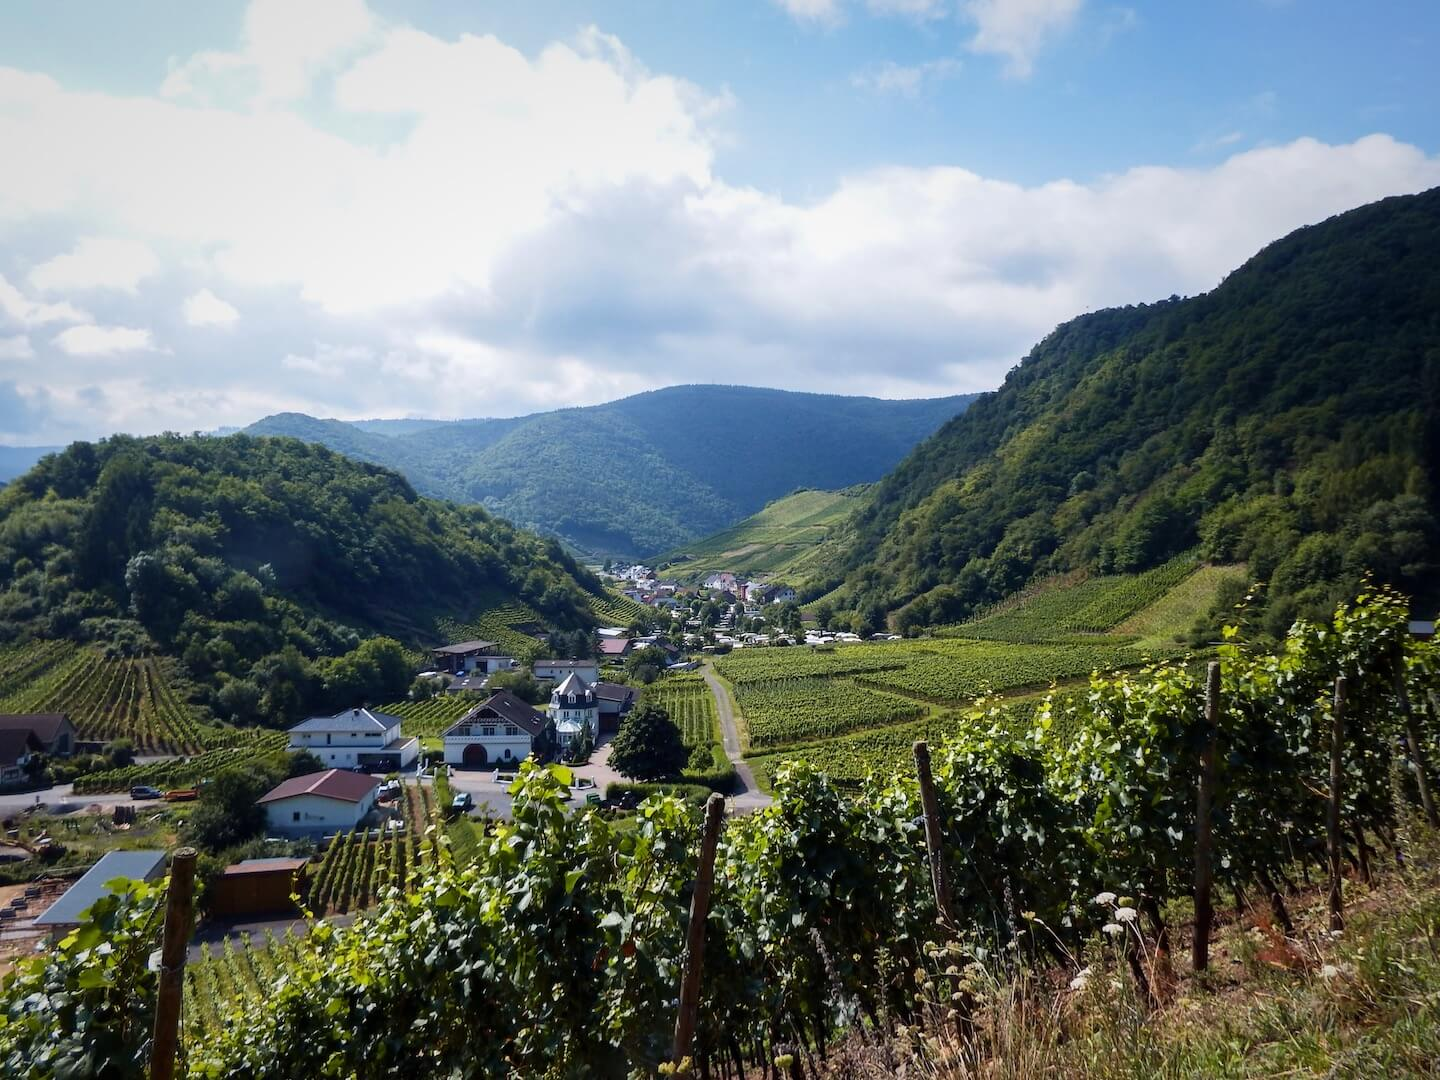 Red Wine Trail (Rotweinwanderweg), Ahr Valley, Germany